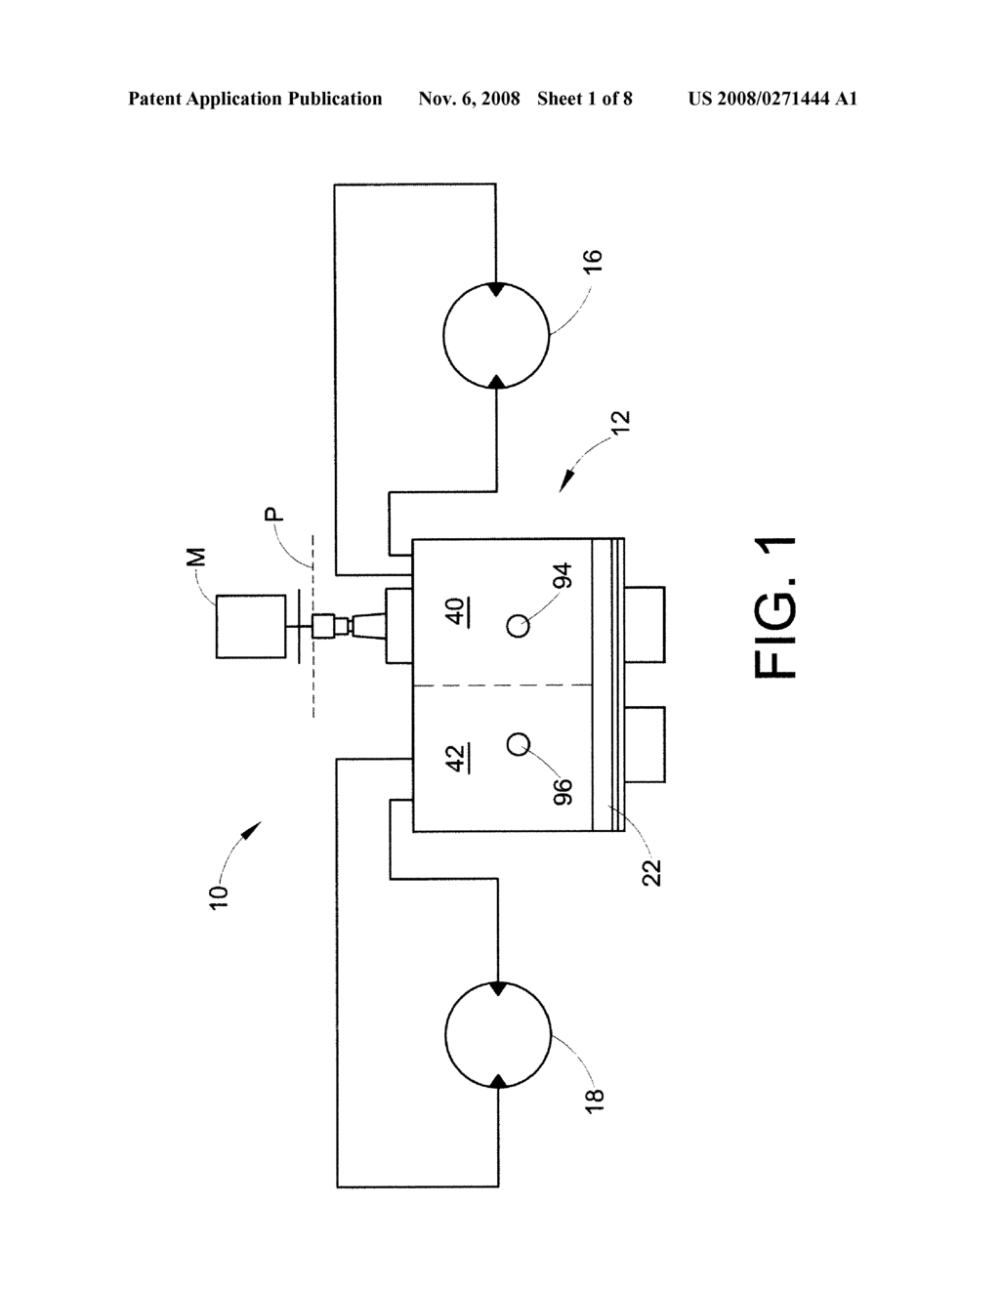 medium resolution of return to neutral mechanism for hydraulic pump diagram schematic and image 02